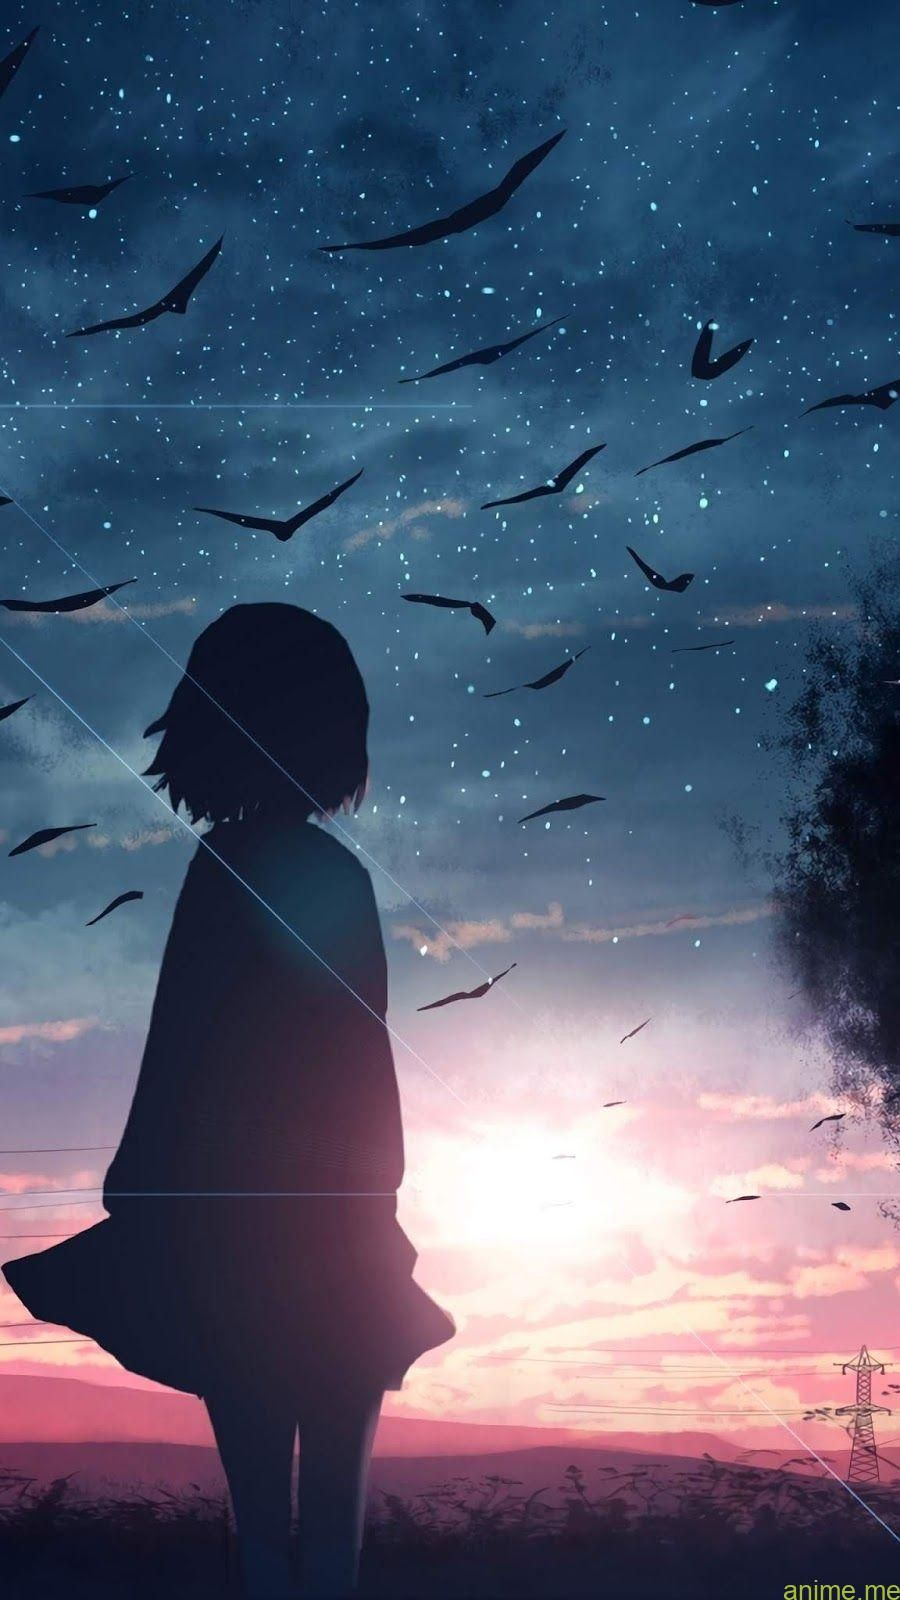 Earlier Than The Sundown Night Time Wallpaper Iphone Android Background Followme Anime Anime Scenery Anime Backgrounds Wallpapers Anime Scenery Wallpaper